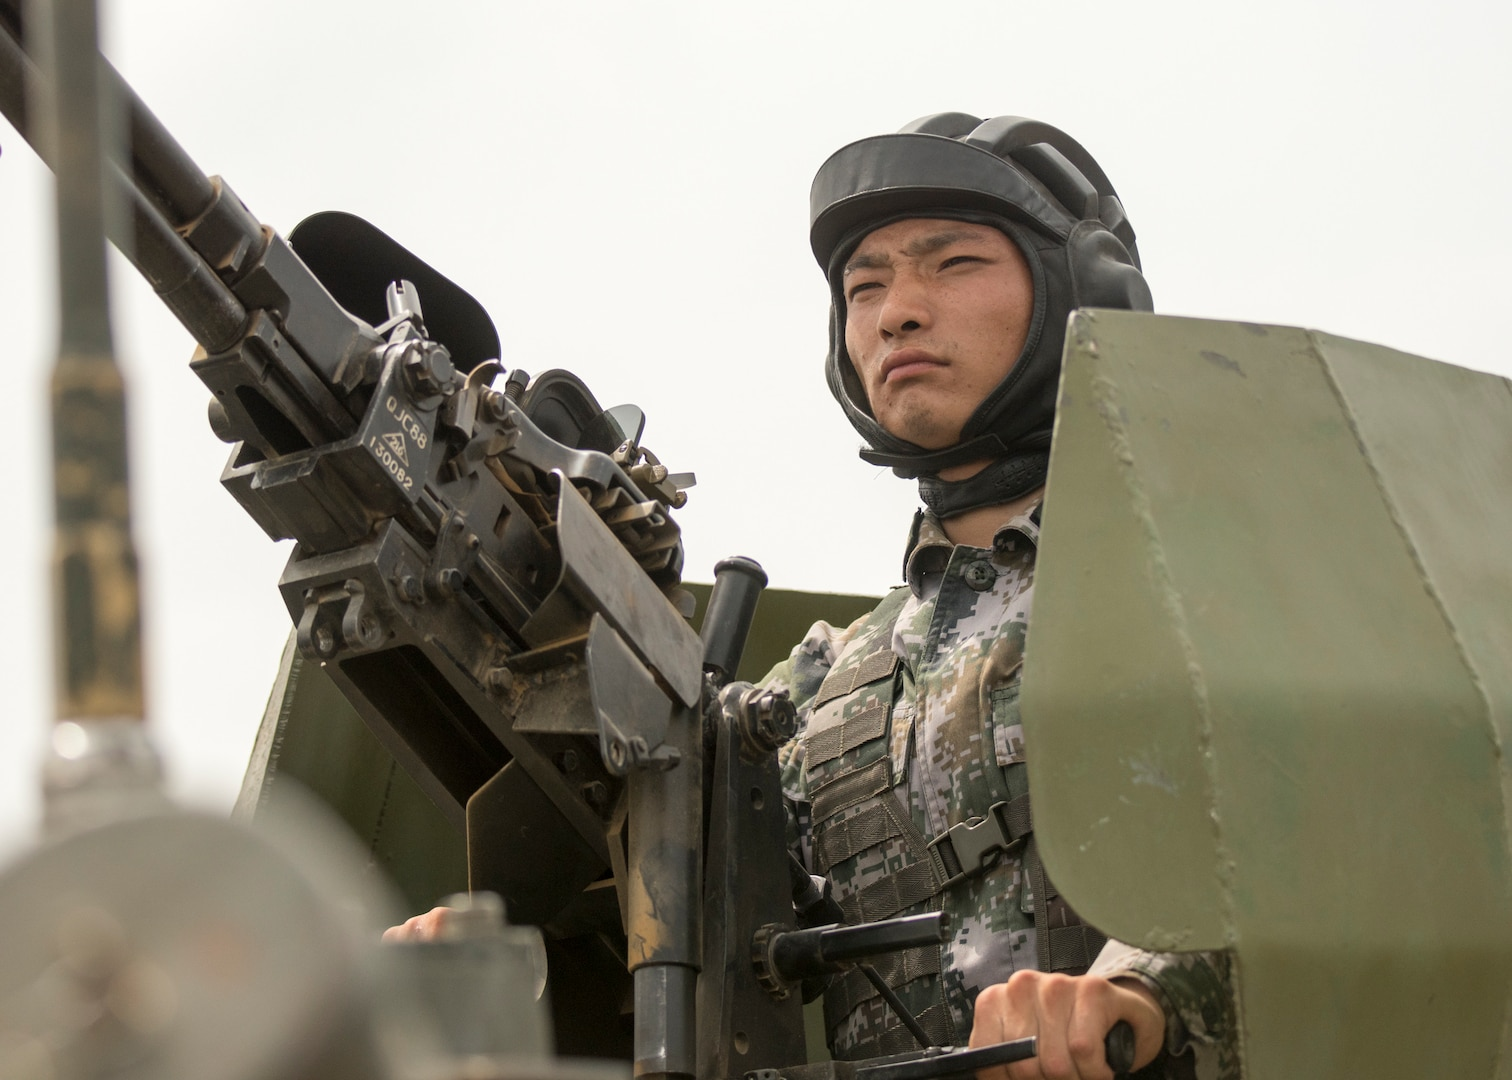 PLA soldier participates in attack exercise observed by General Joseph F. Dunford, Jr., and General Song Puxuan, commander, Northern Theater Command, at base in Shenyang, China, August 16, 2017 (DOD/Dominique A. Pineiro)